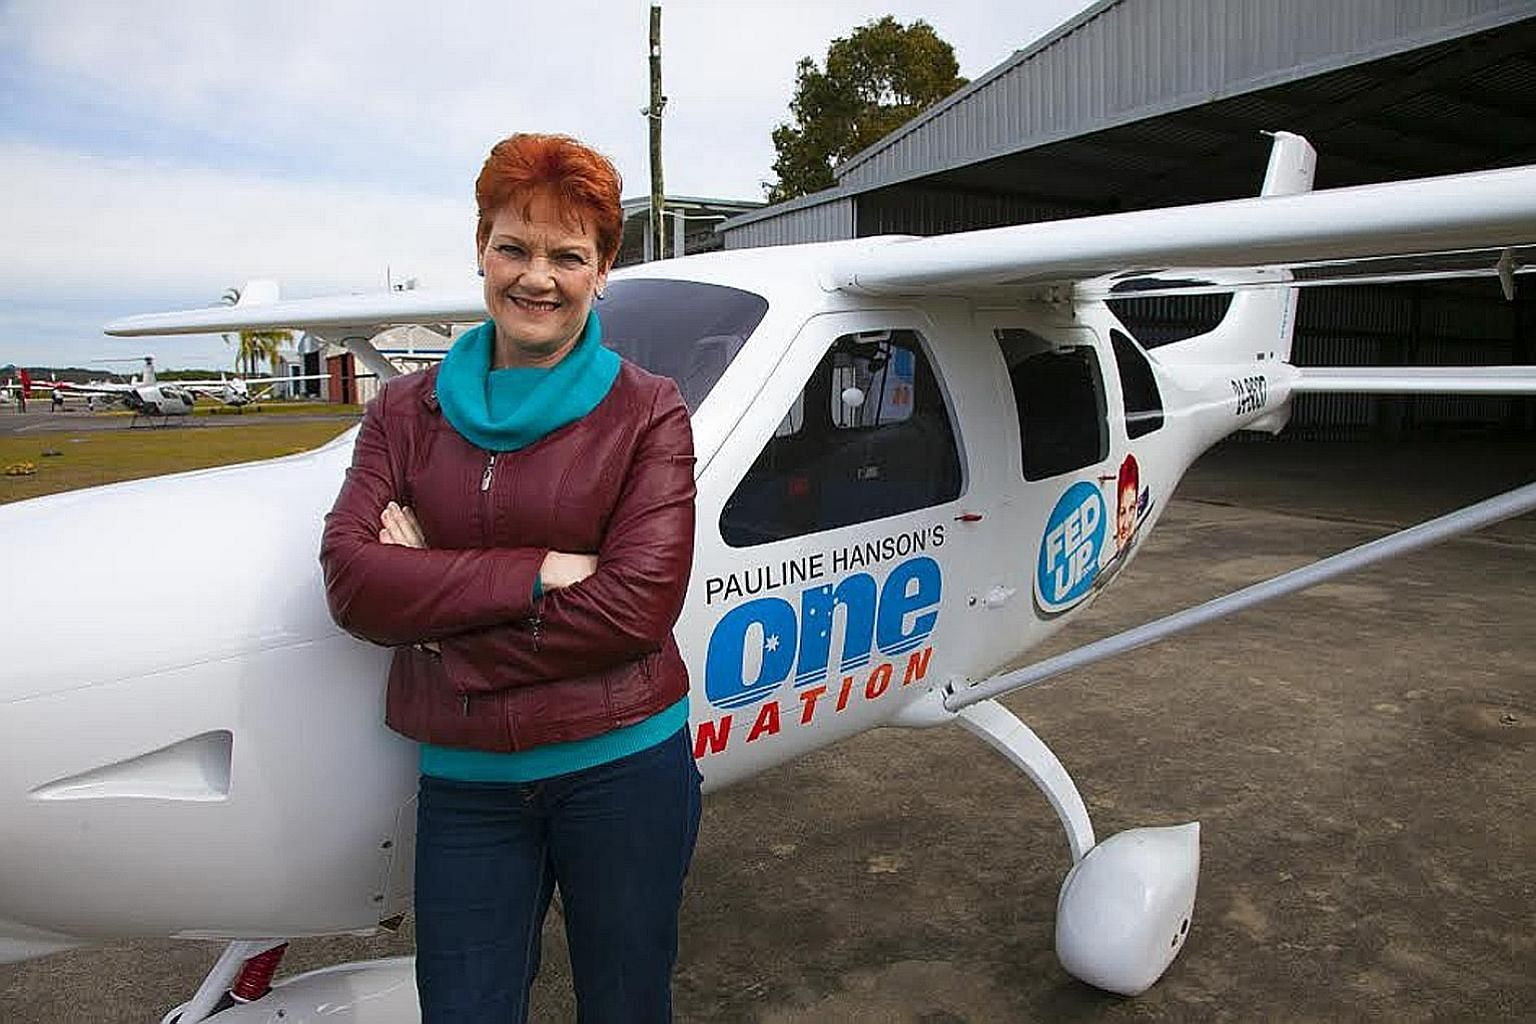 """Ms Hanson (above) told The Straits Times that she is """"quietly confident"""" of returning to Parliament. She is contesting the election as leader of her One Nation party, which she co-founded two decades ago."""